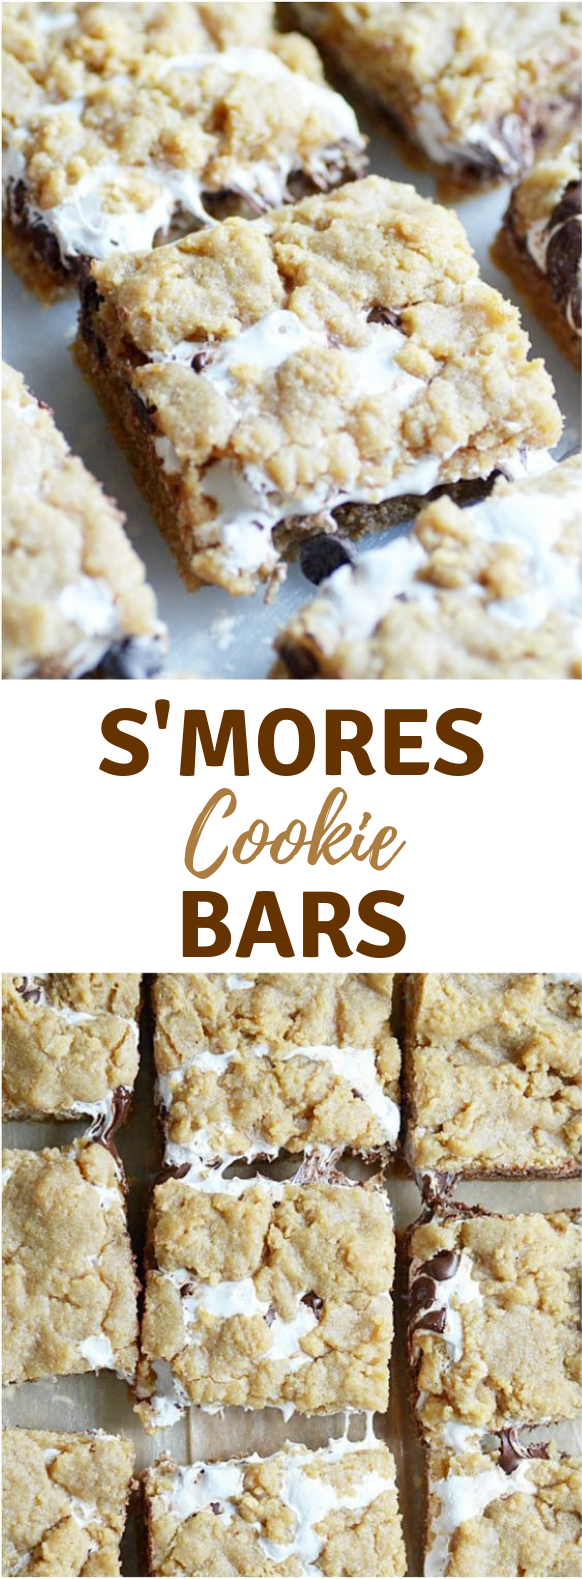 S'mores Cookie Bars #Cookie #Dessert